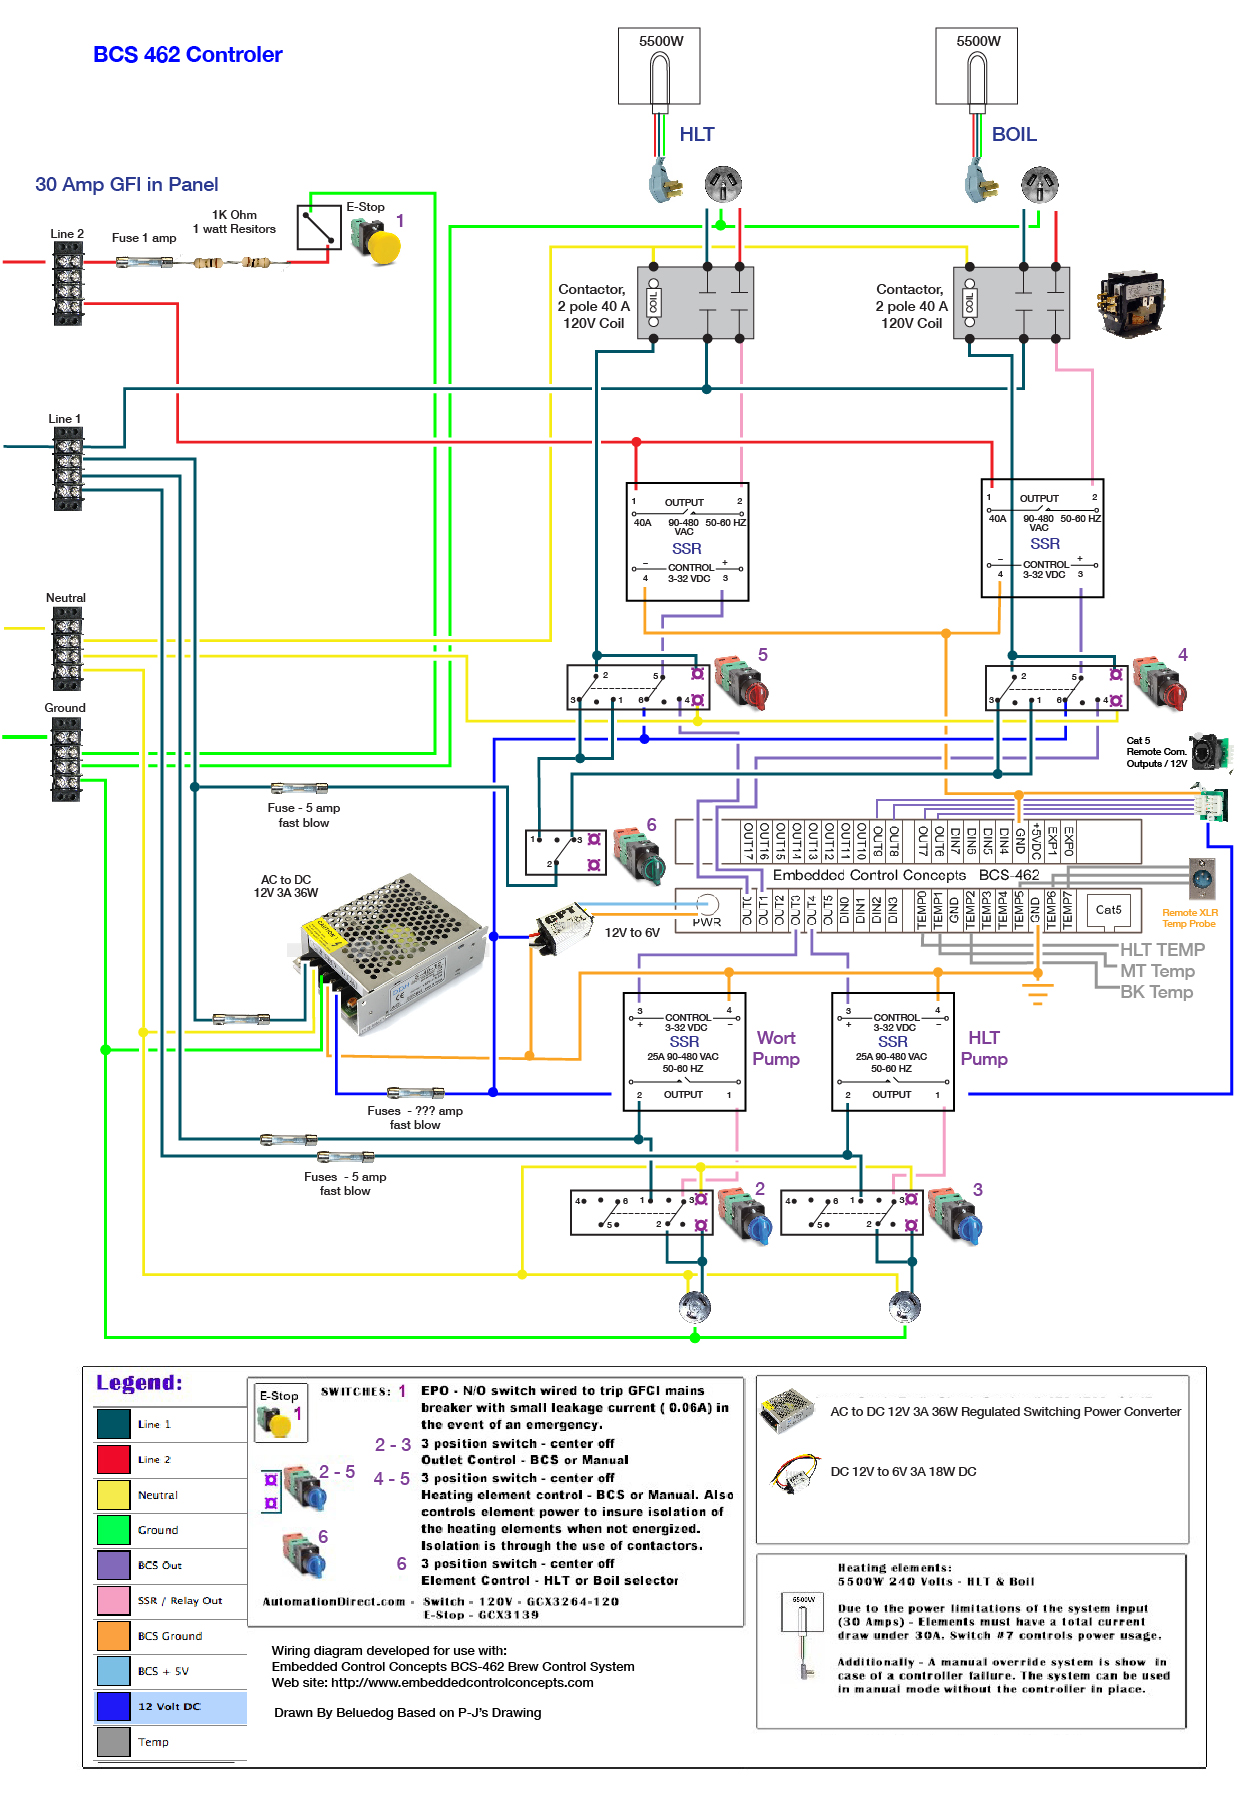 Wiring Check Bcs 462 Ecc Forum A Switch And Schematic In Same Box